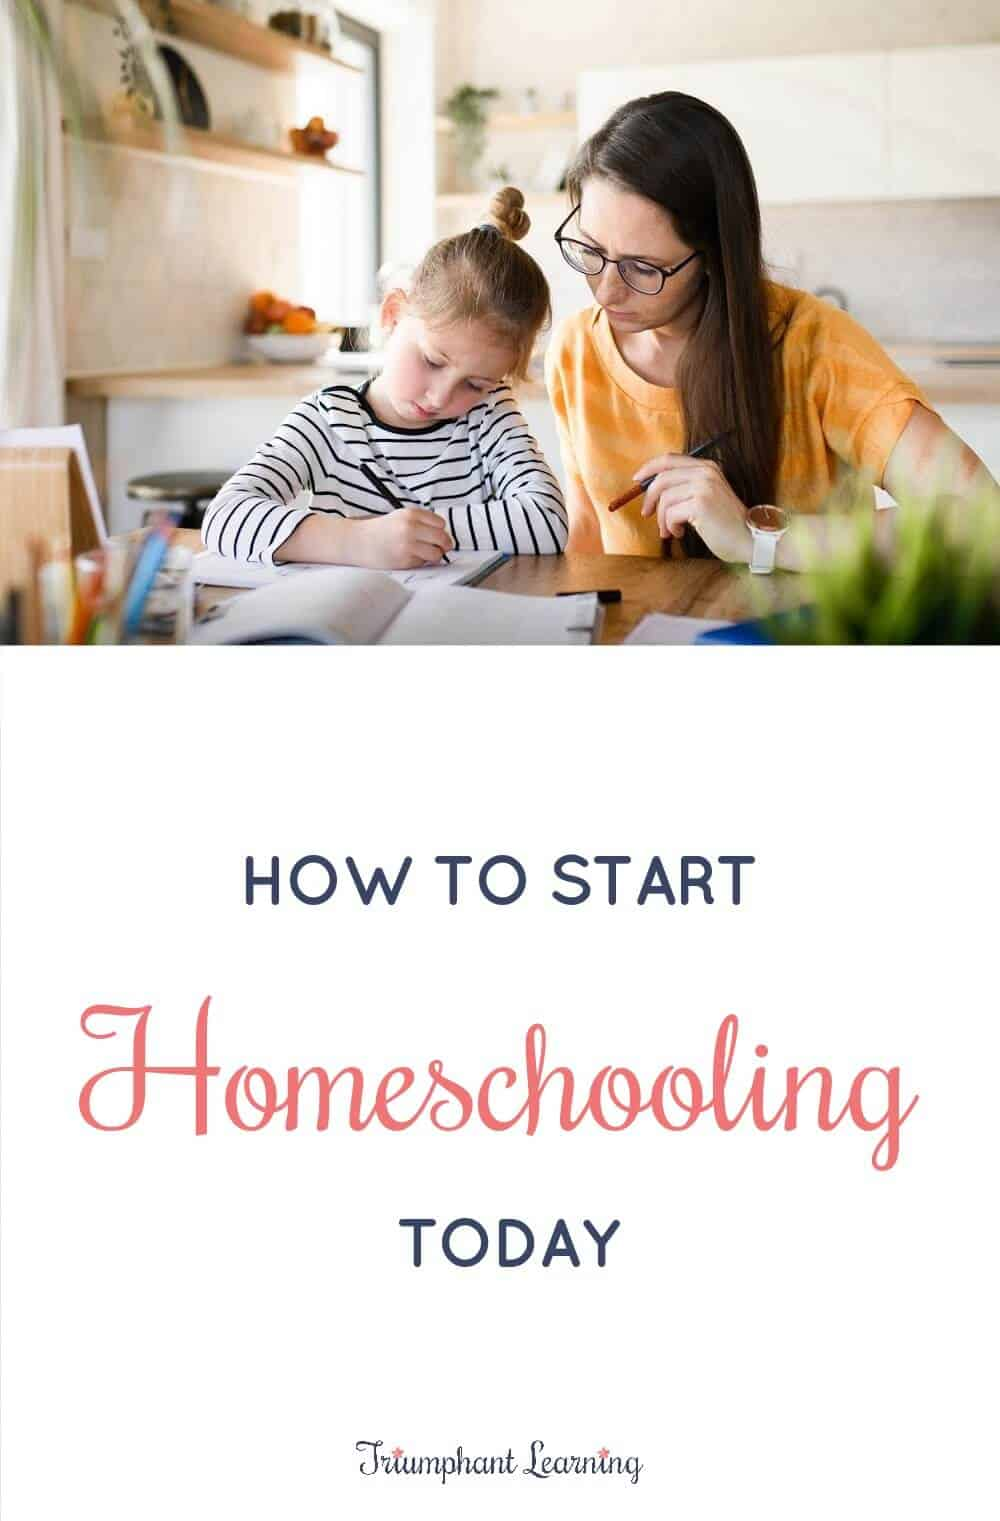 Follow this step-by-step checklist to start homeschooling today! via @TriLearning